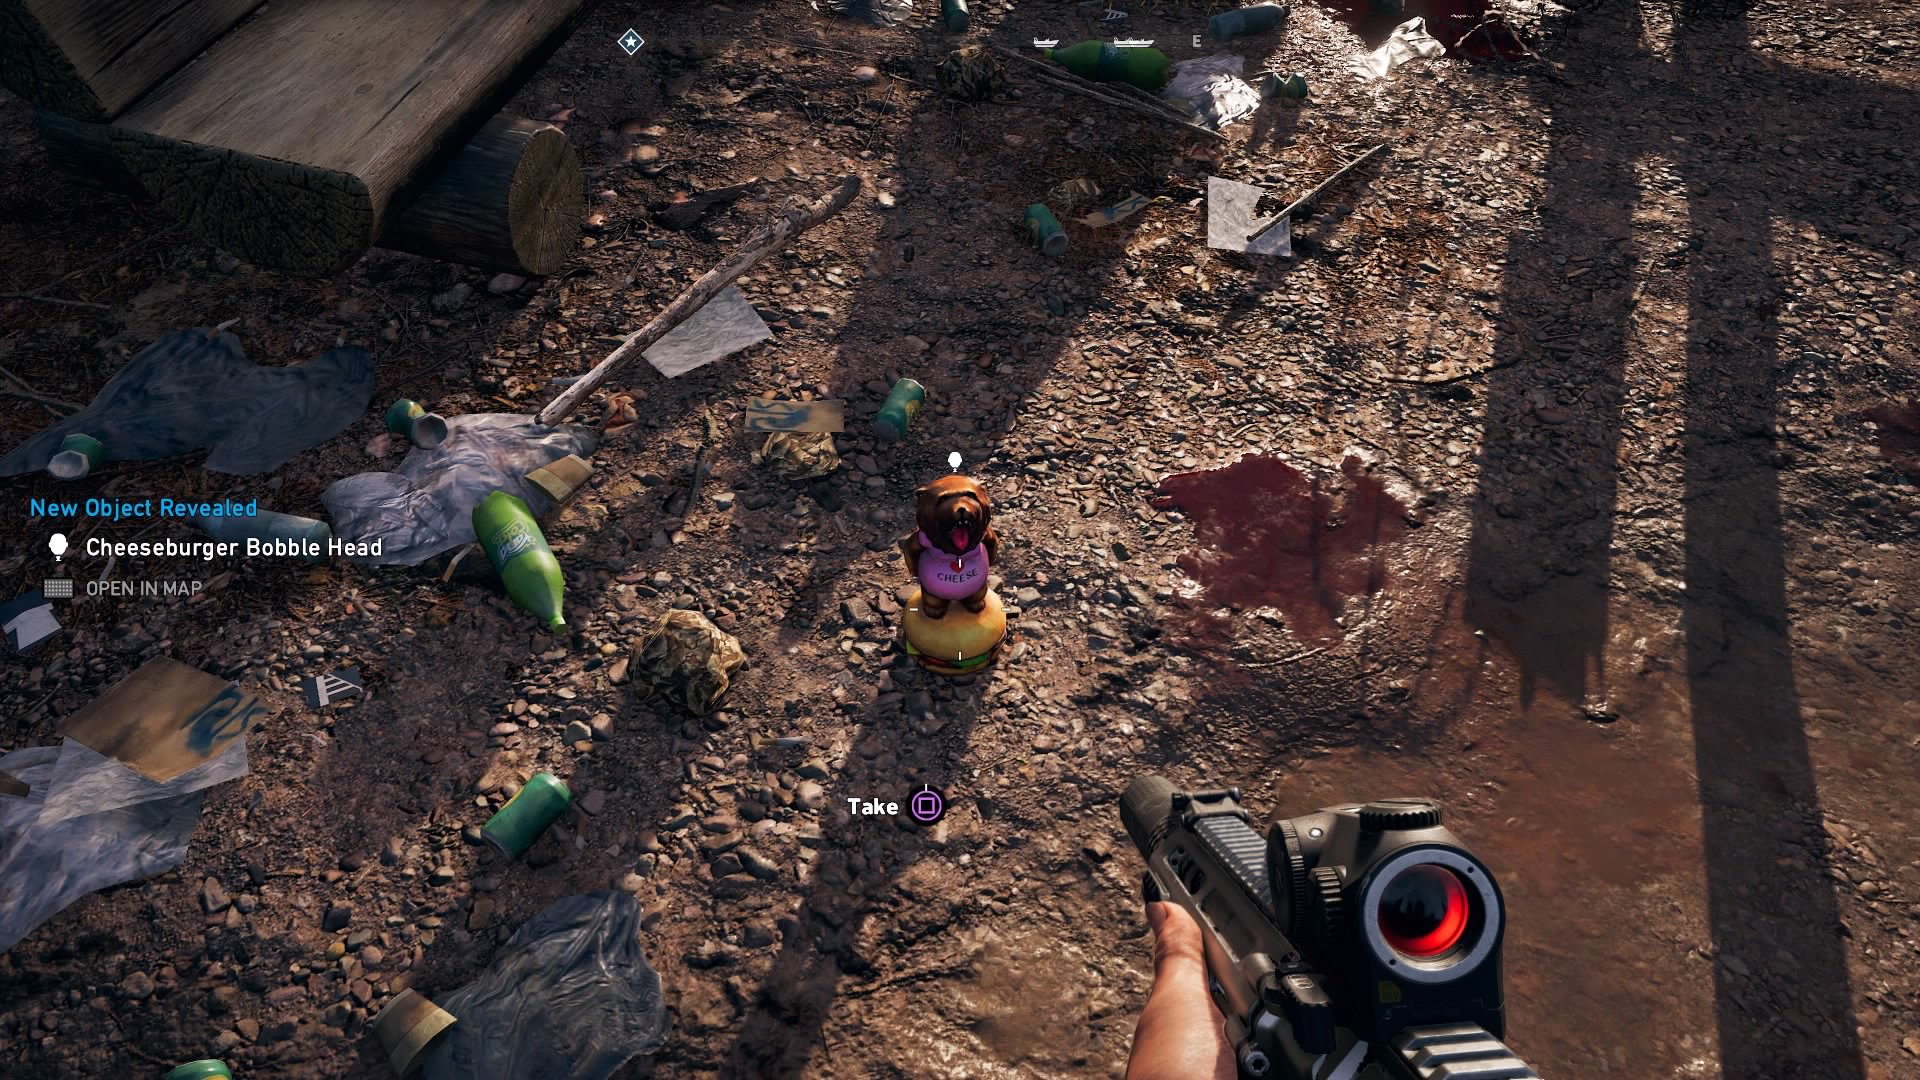 Far Cry 5 Cheeseburger Bobblehead Locations - Where to Find